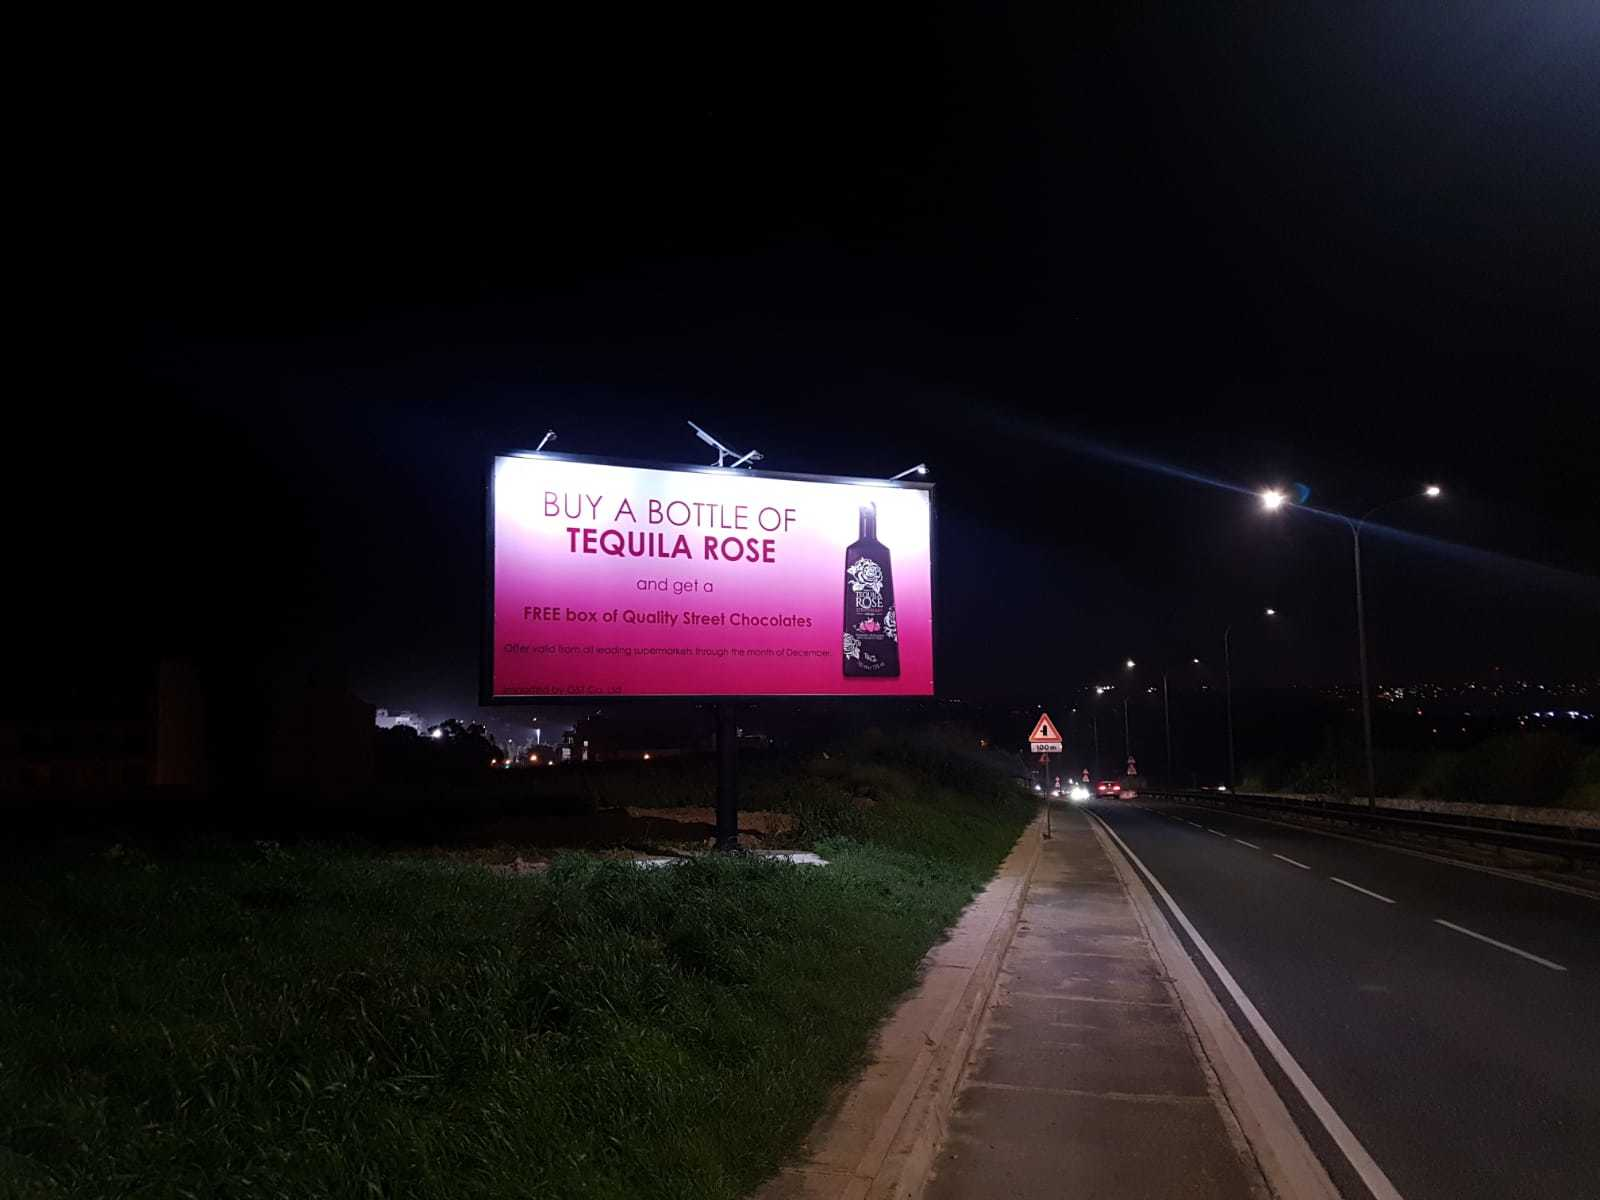 6.2x3.1m Outdoor single side billboard